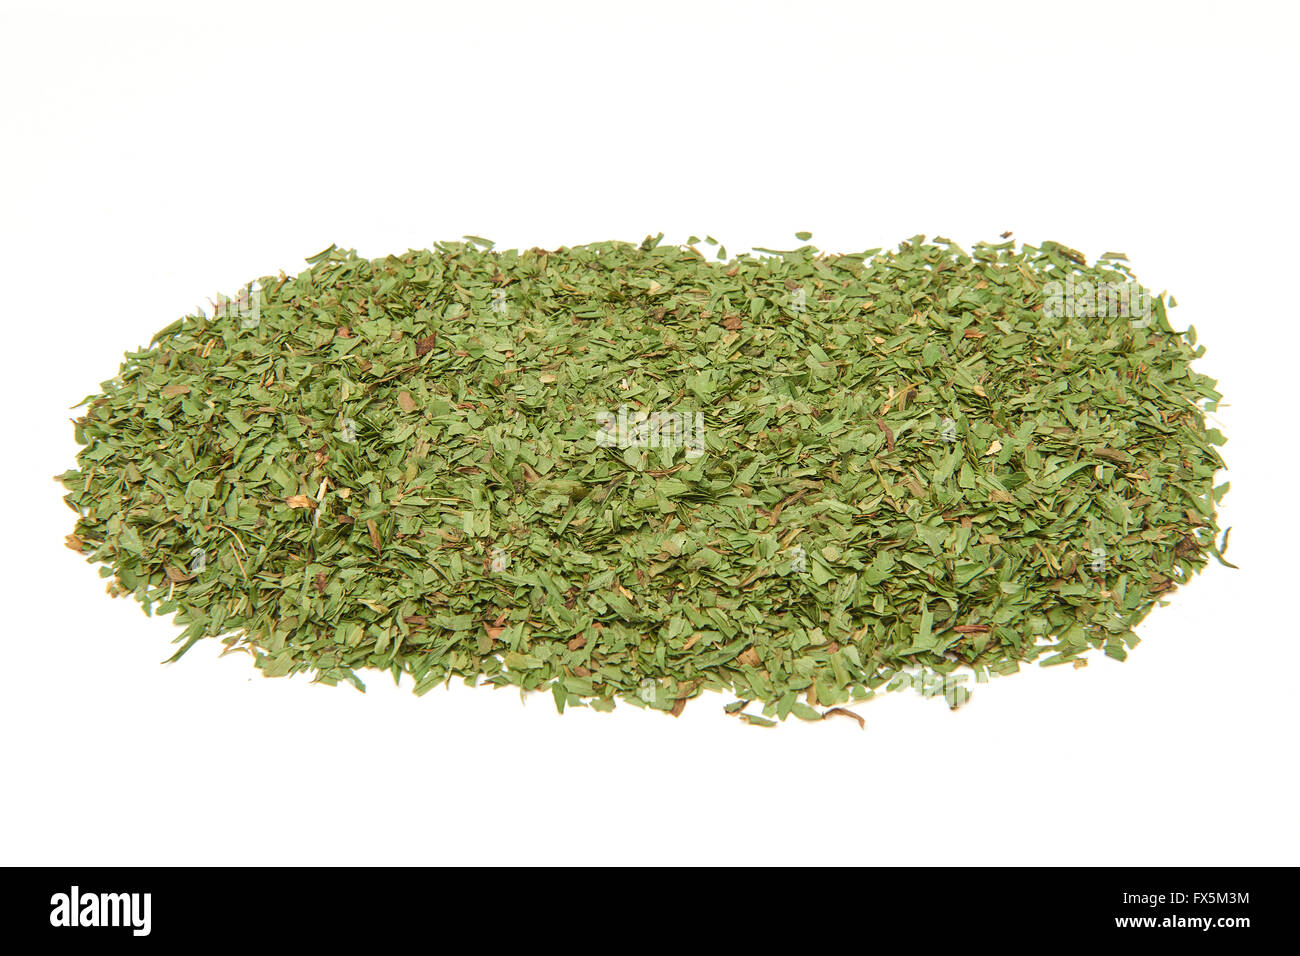 Closeup image of green dried tarragon leaves - Stock Image